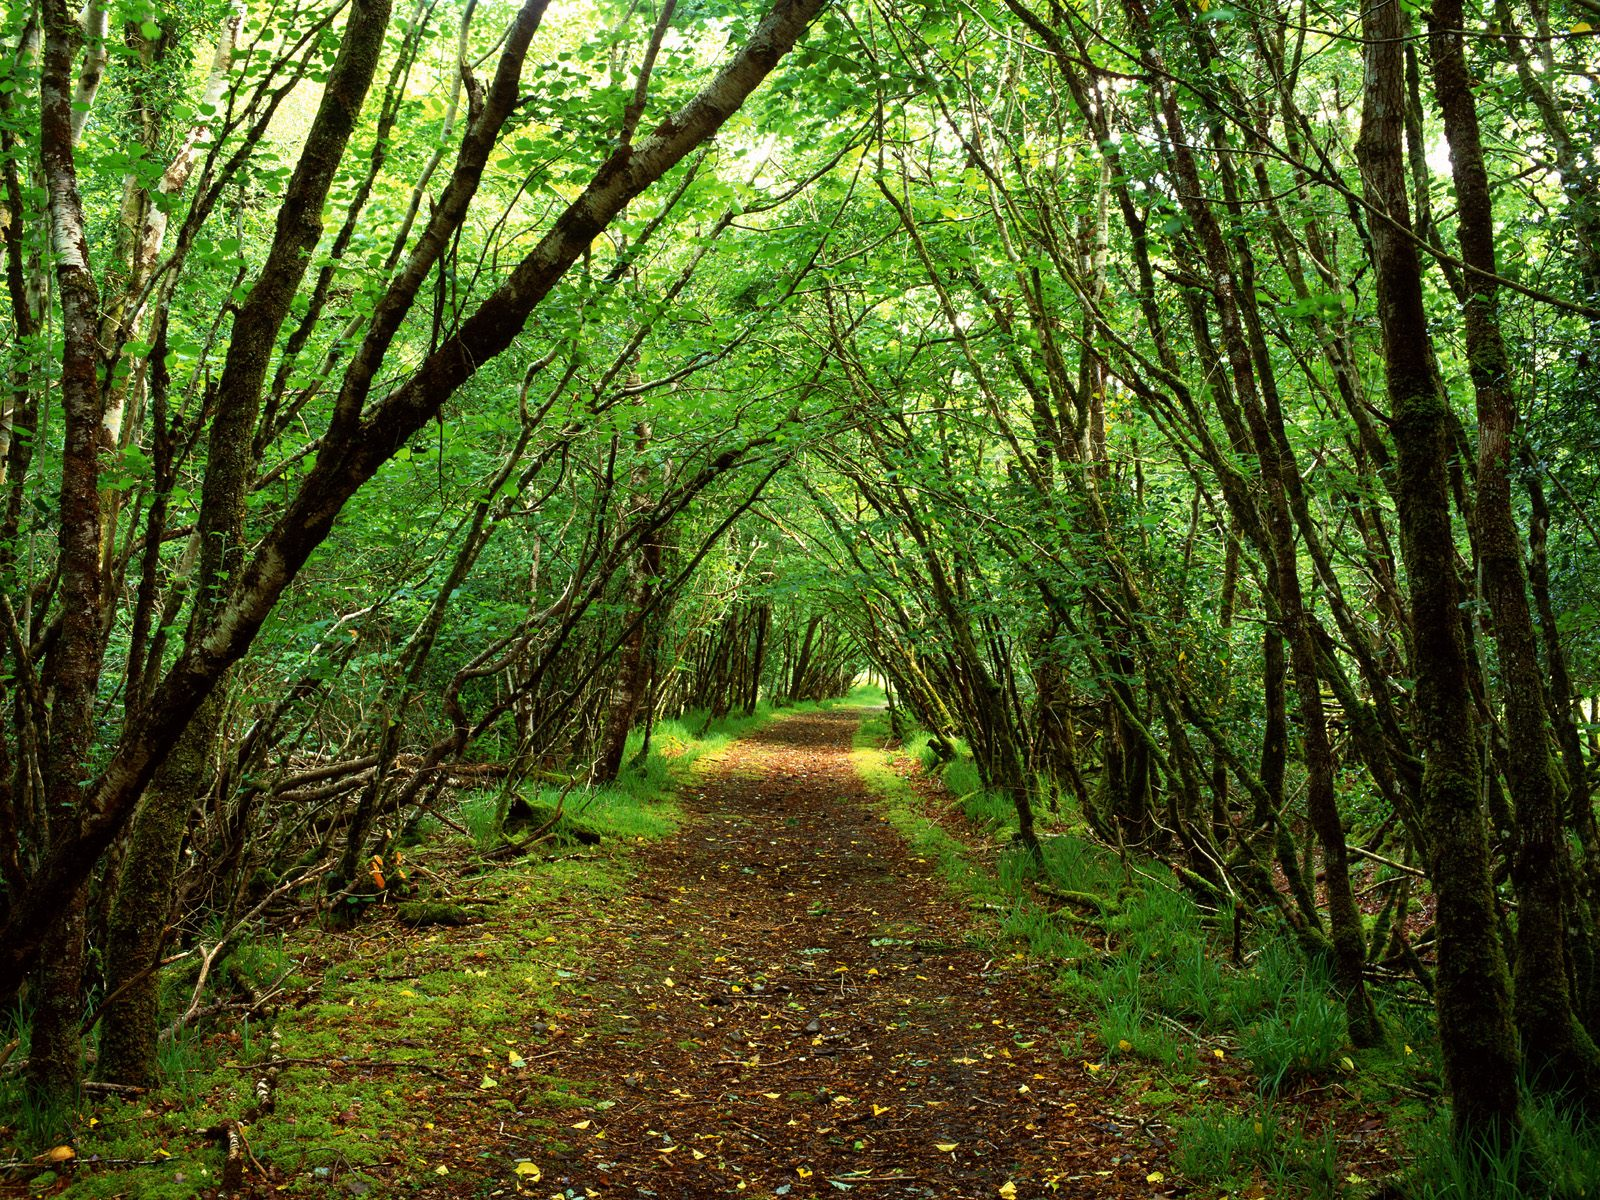 Rossacroo-na-loo Wood Near Kilgarvan County Kerry Ireland